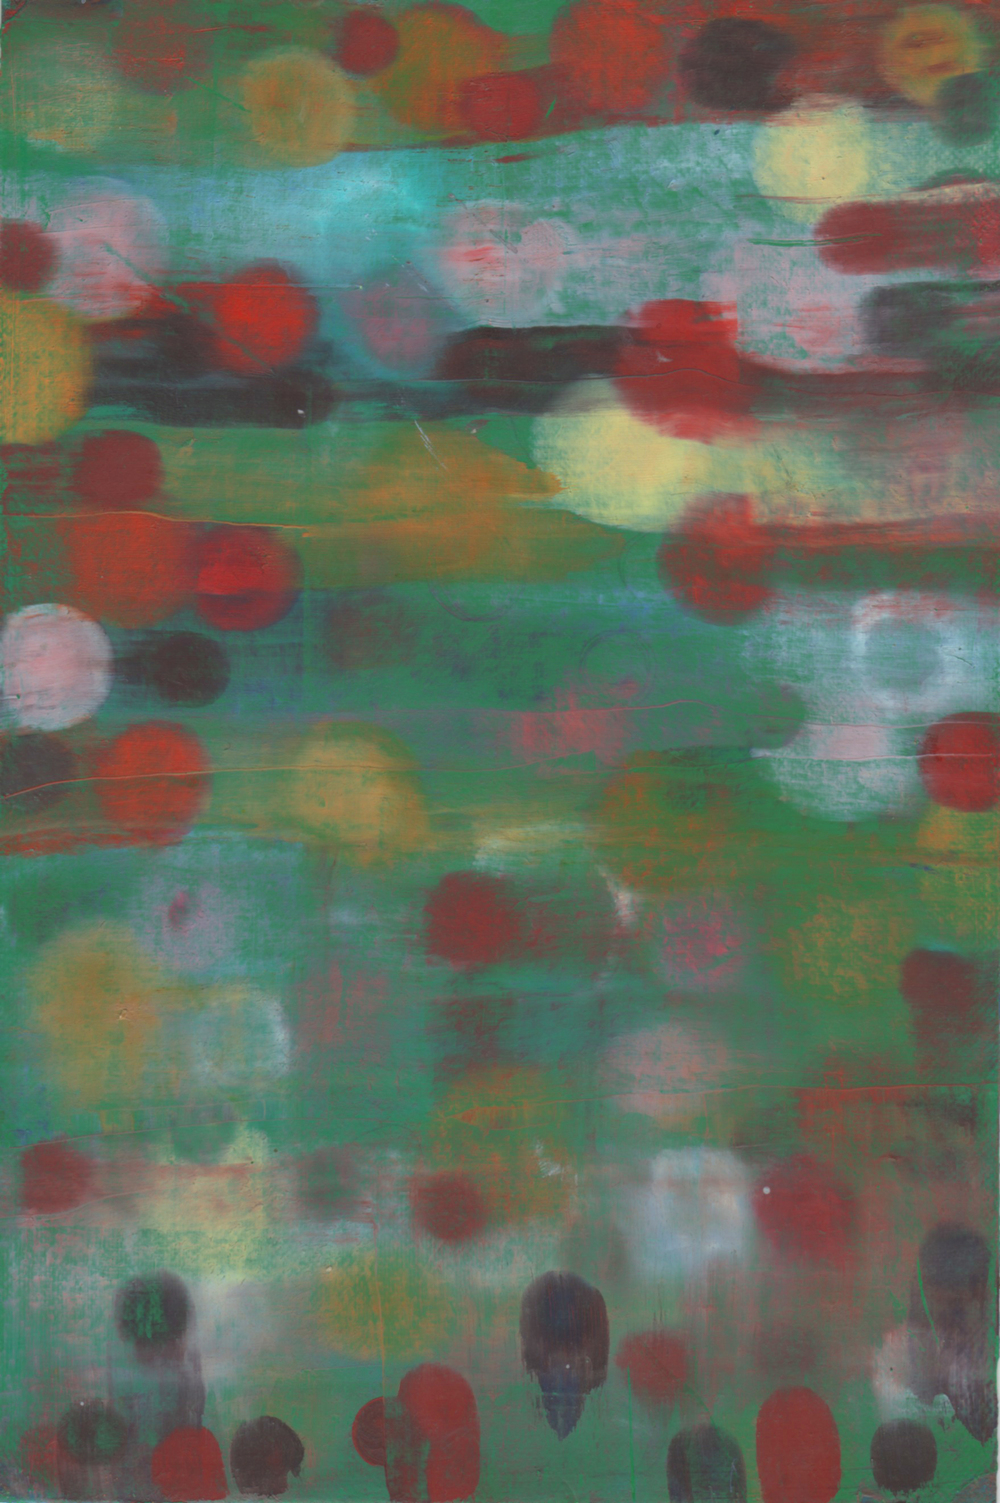 untitled 9,  2010  oil on paper, 9 x 5 in